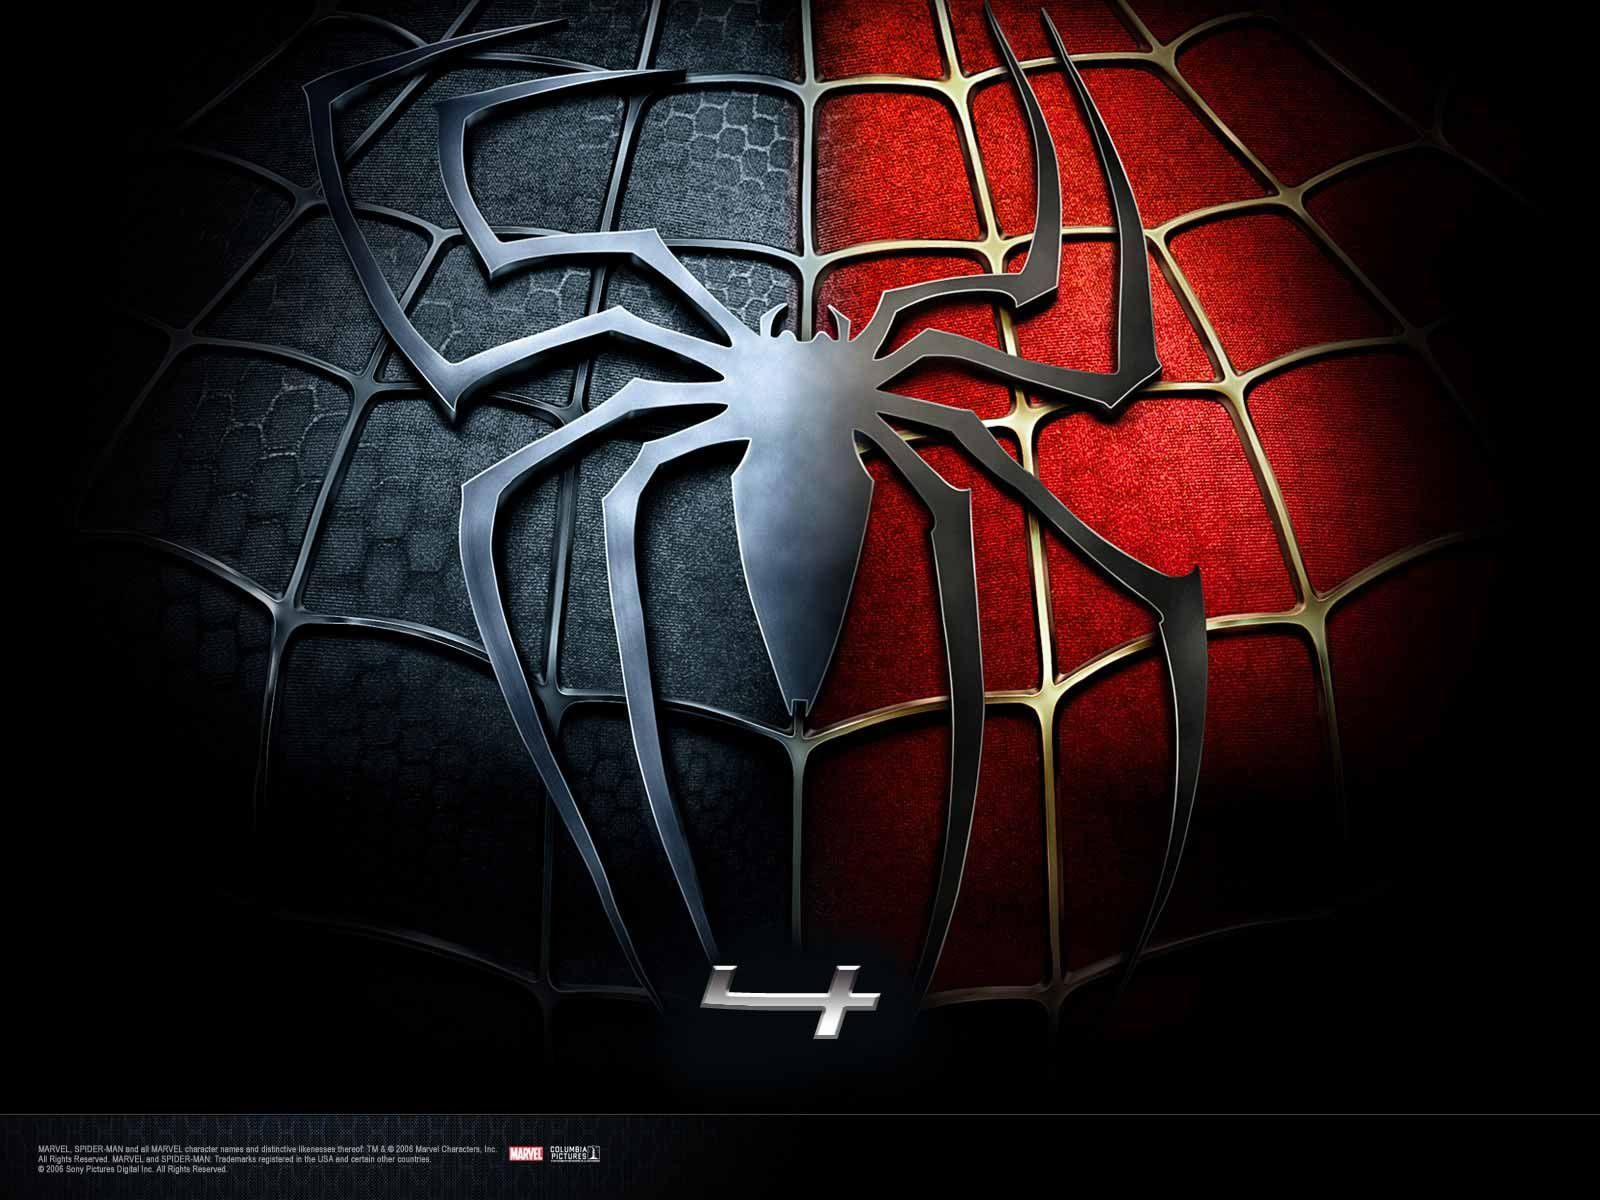 download free spider man 4 wallpapers hd wallpaper | saw | pinterest